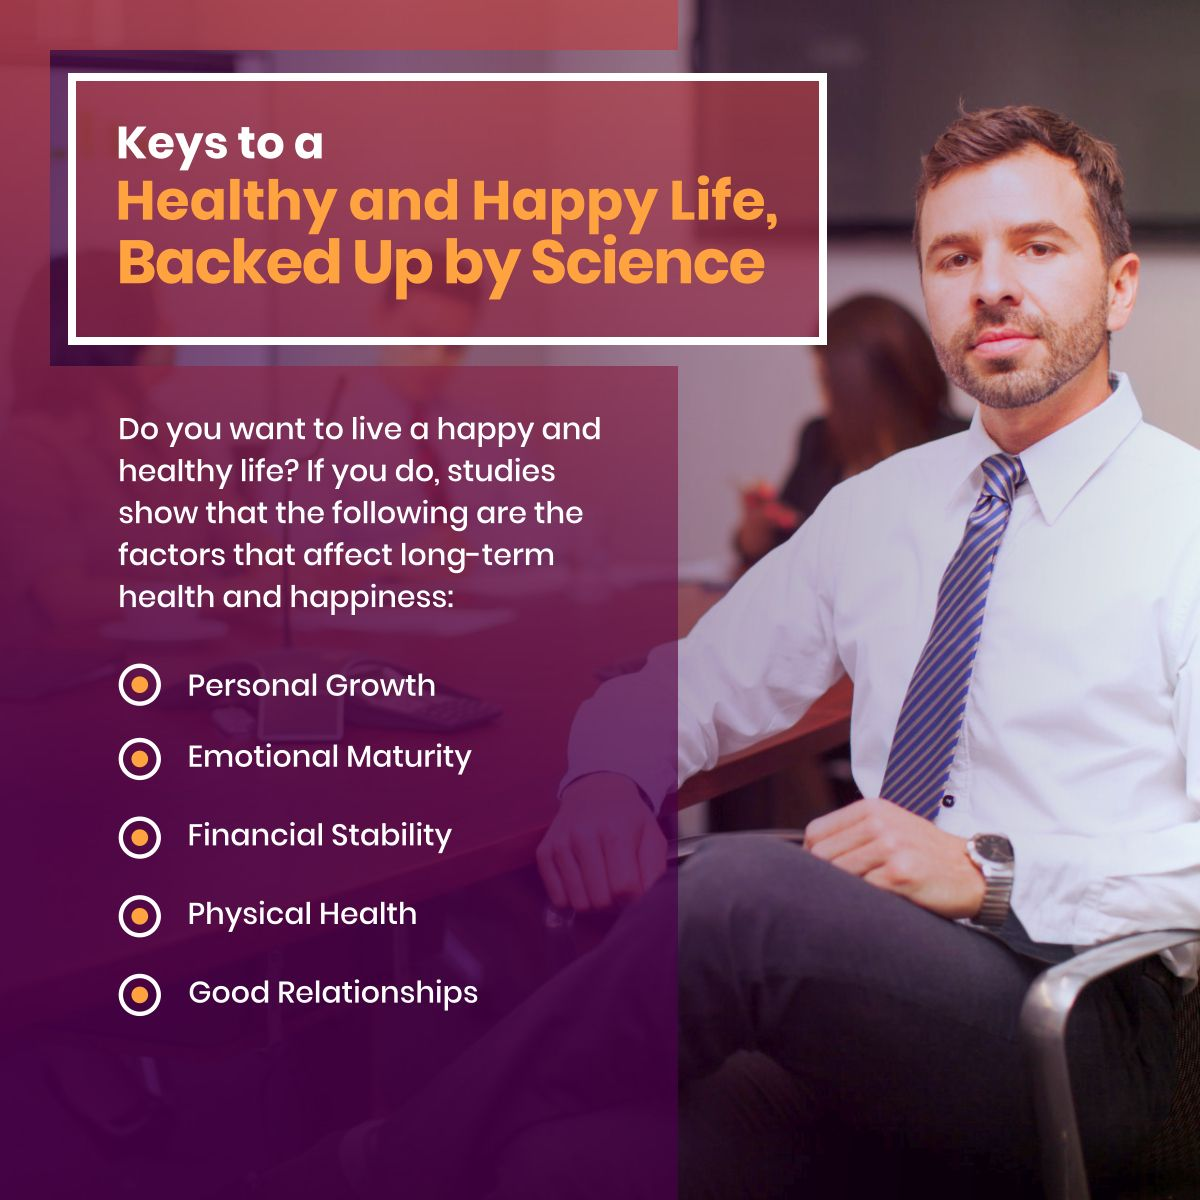 Keys to a healthy and happy life backed up by science